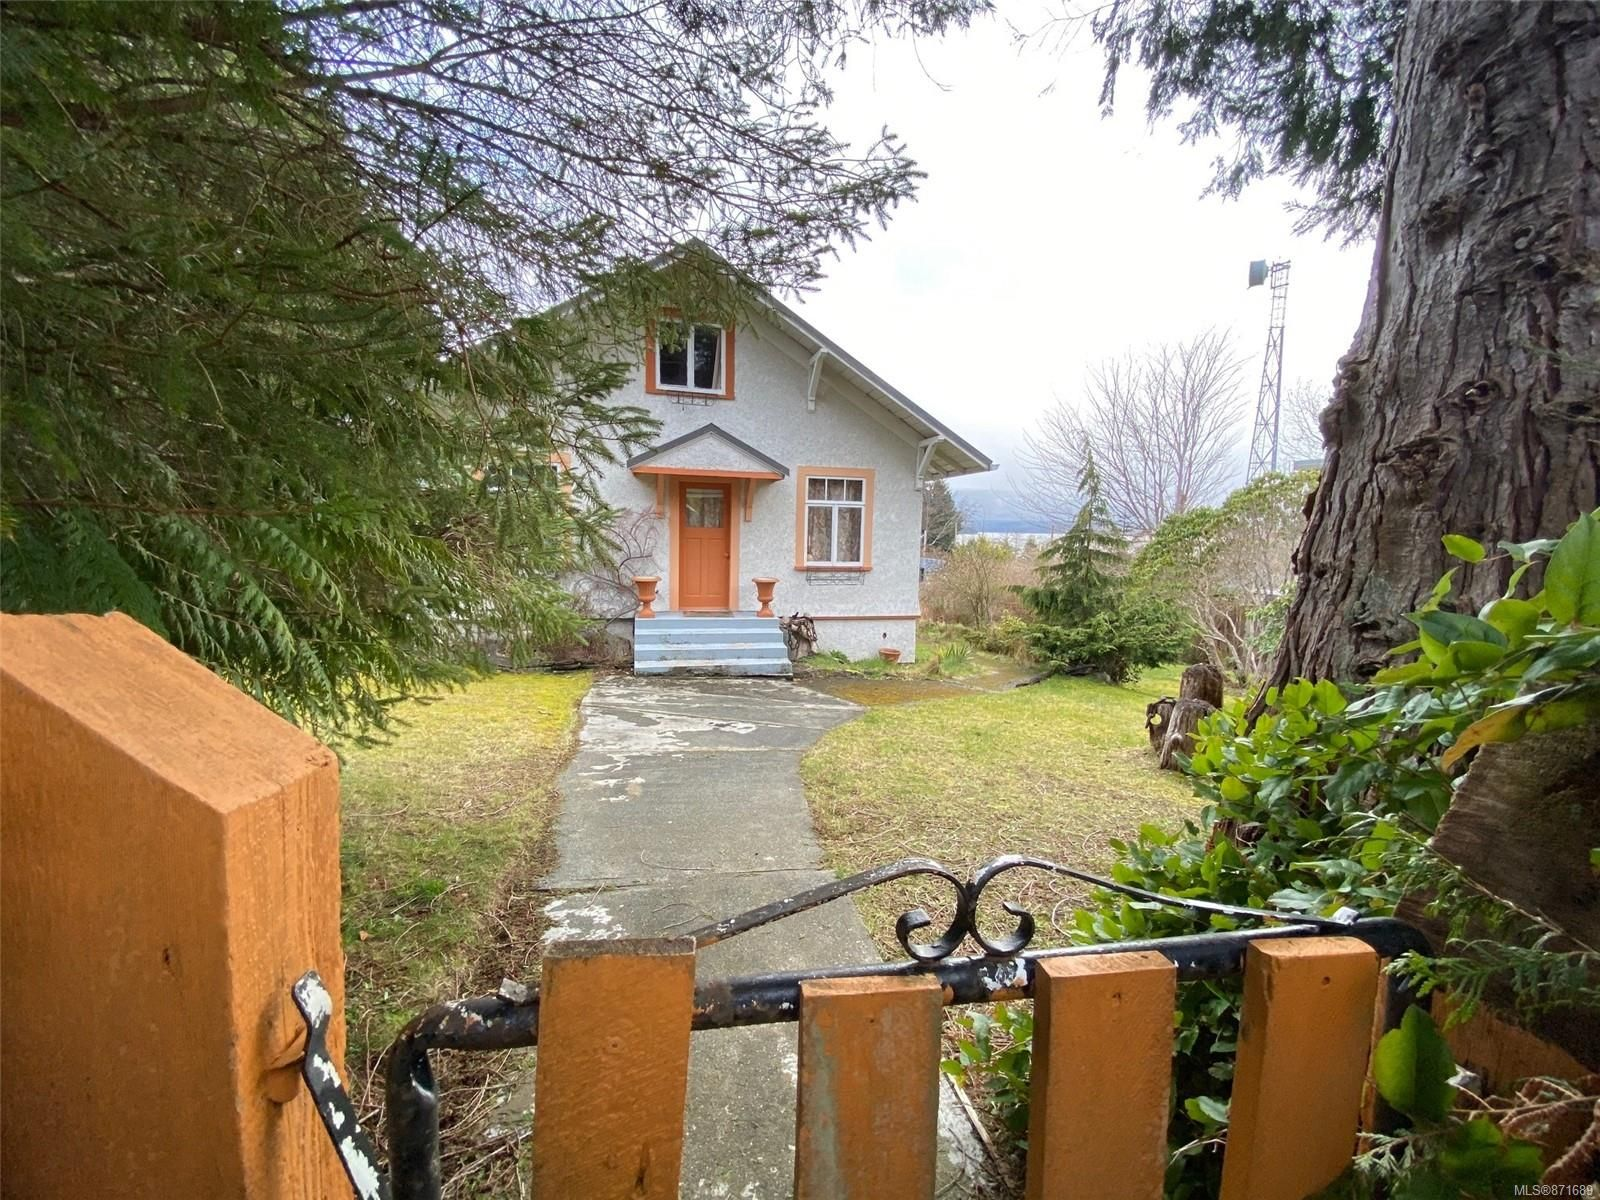 Main Photo: 260 3rd St in : Isl Sointula House for sale (Islands)  : MLS®# 871689